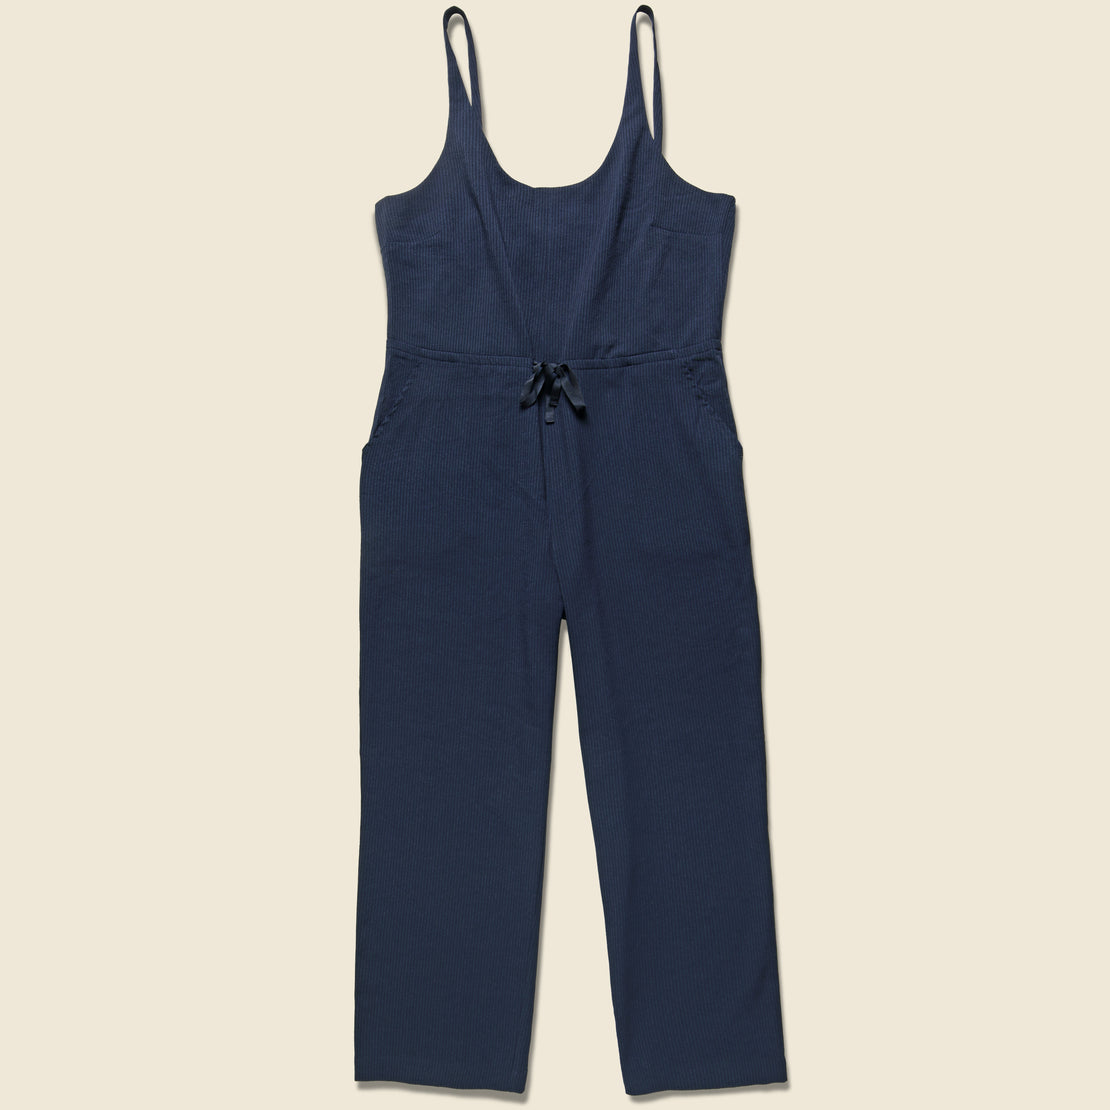 Bridge & Burn Otto Jumpsuit - Navy Seersucker